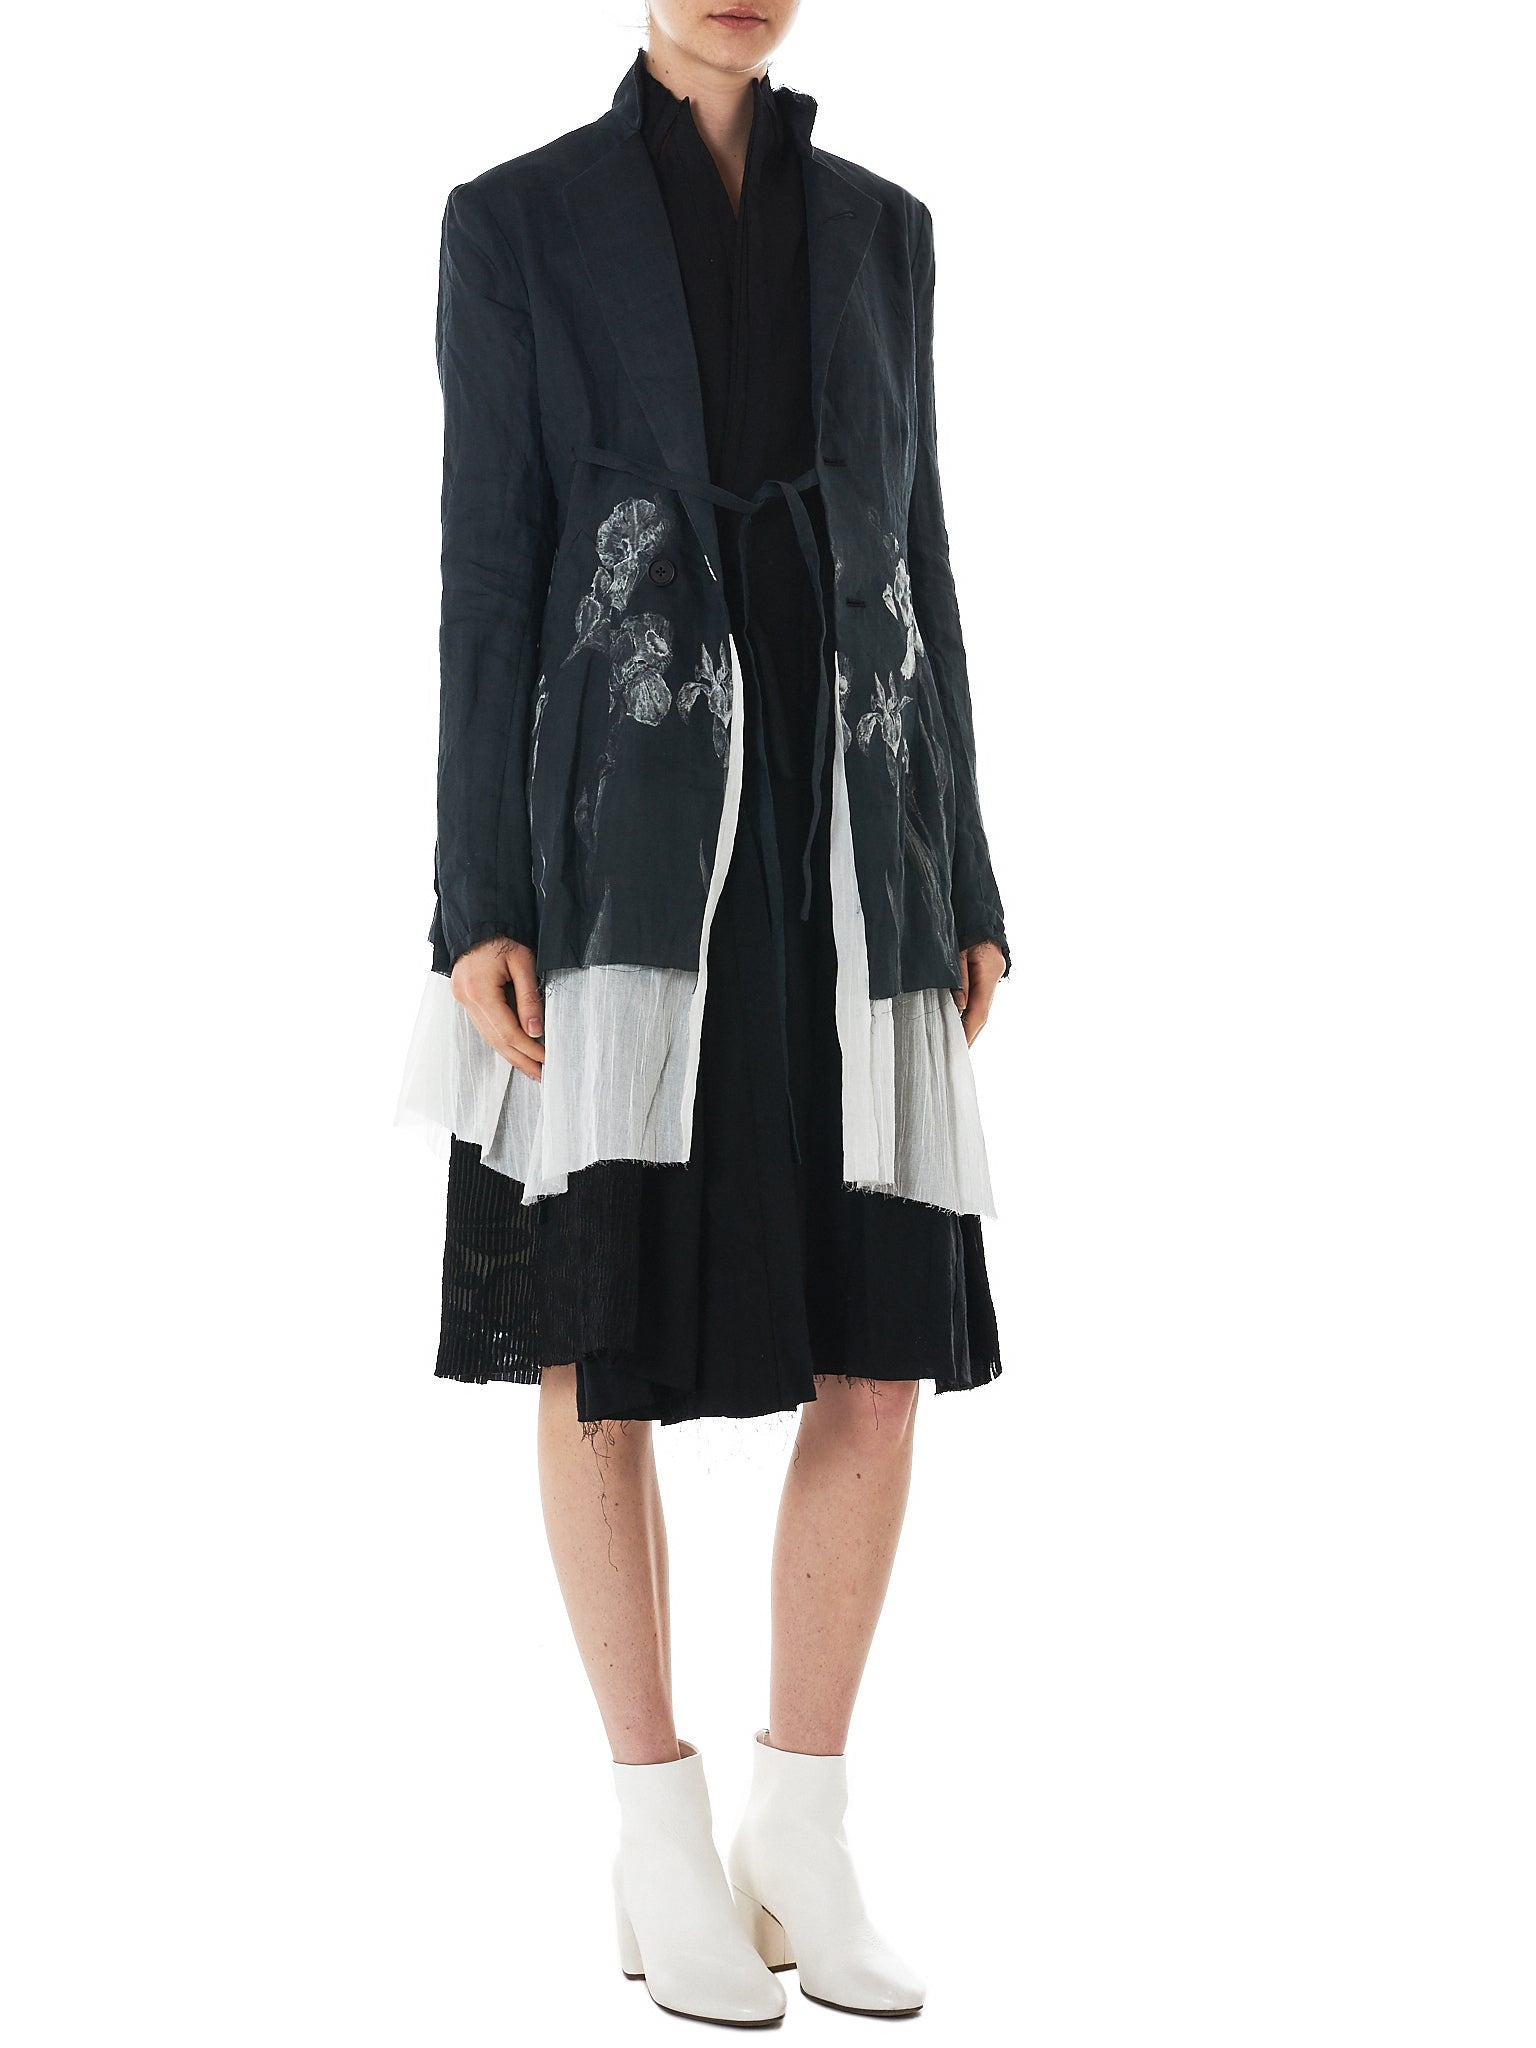 A Tentative Atelier Sleeveless Coat - Hlorenzo Style